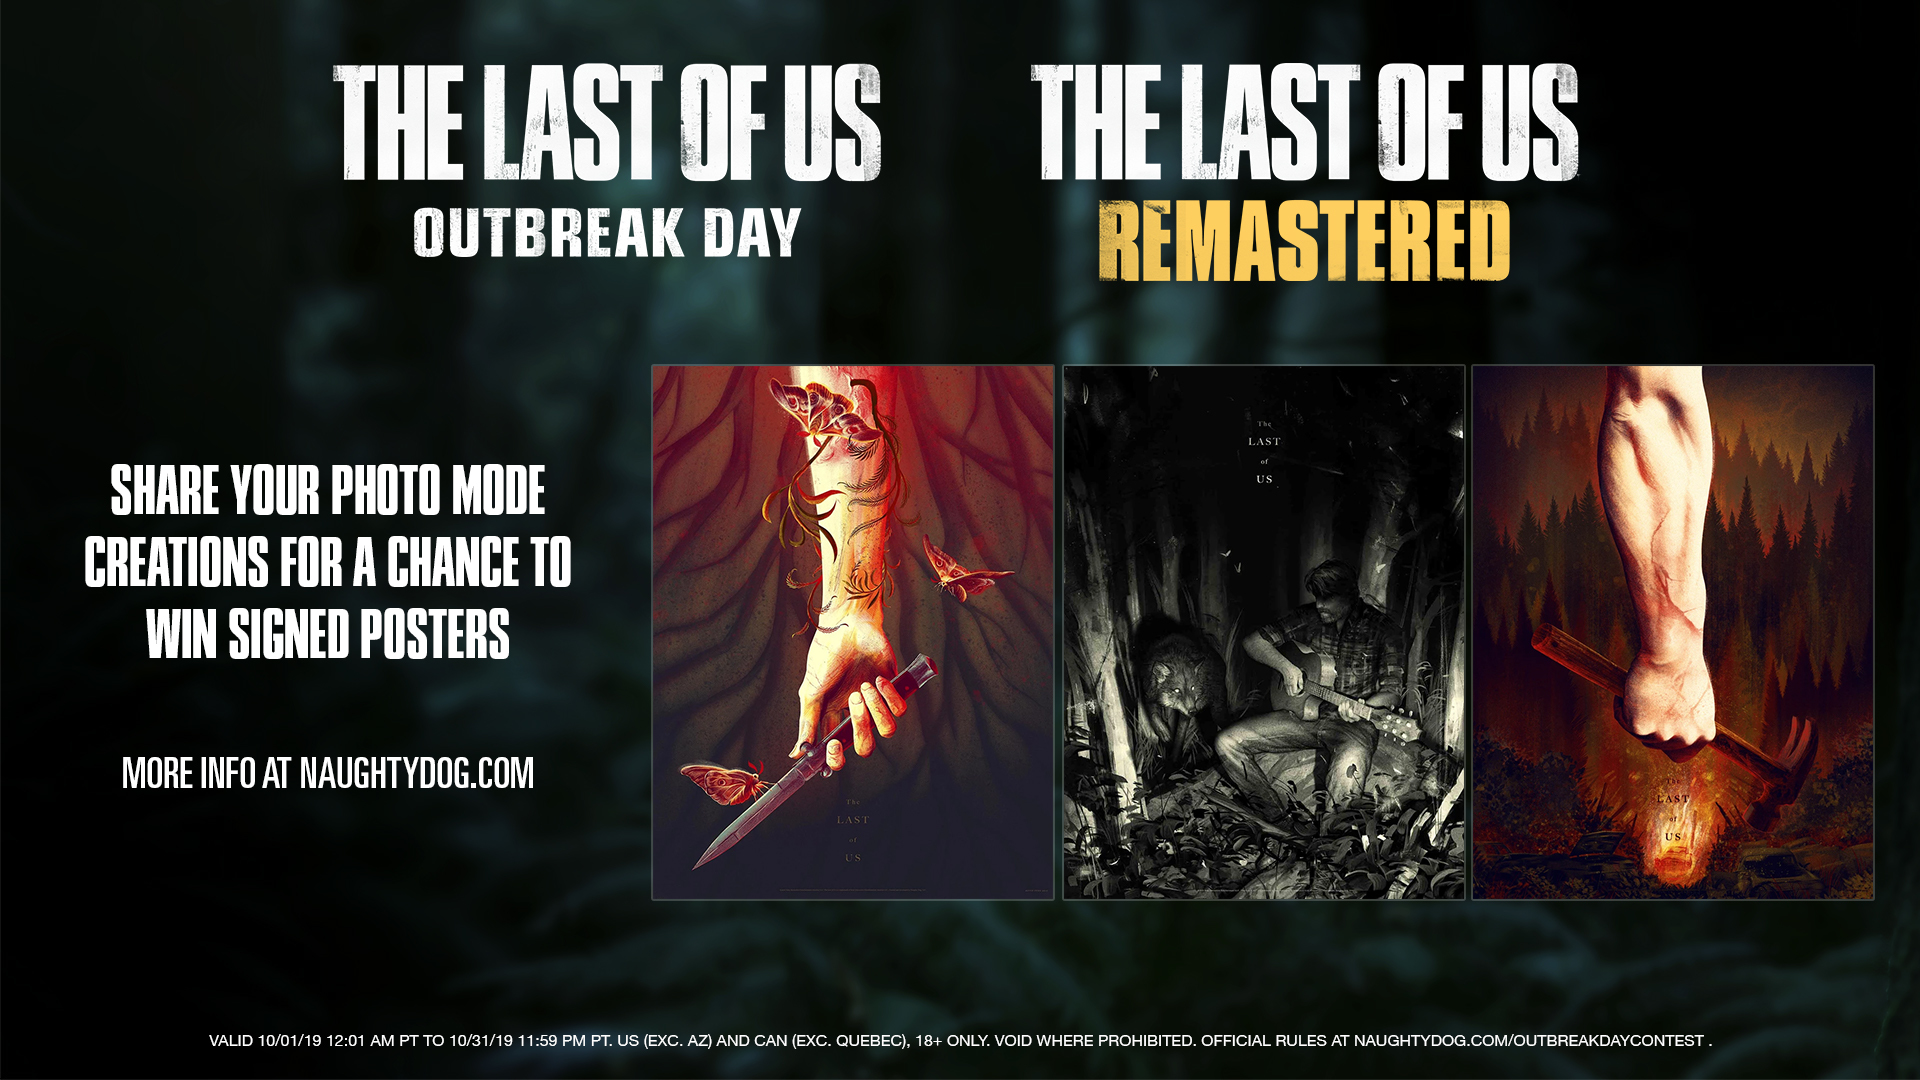 The Last of Us Part II: Outbreak Day 2019 - Image 1